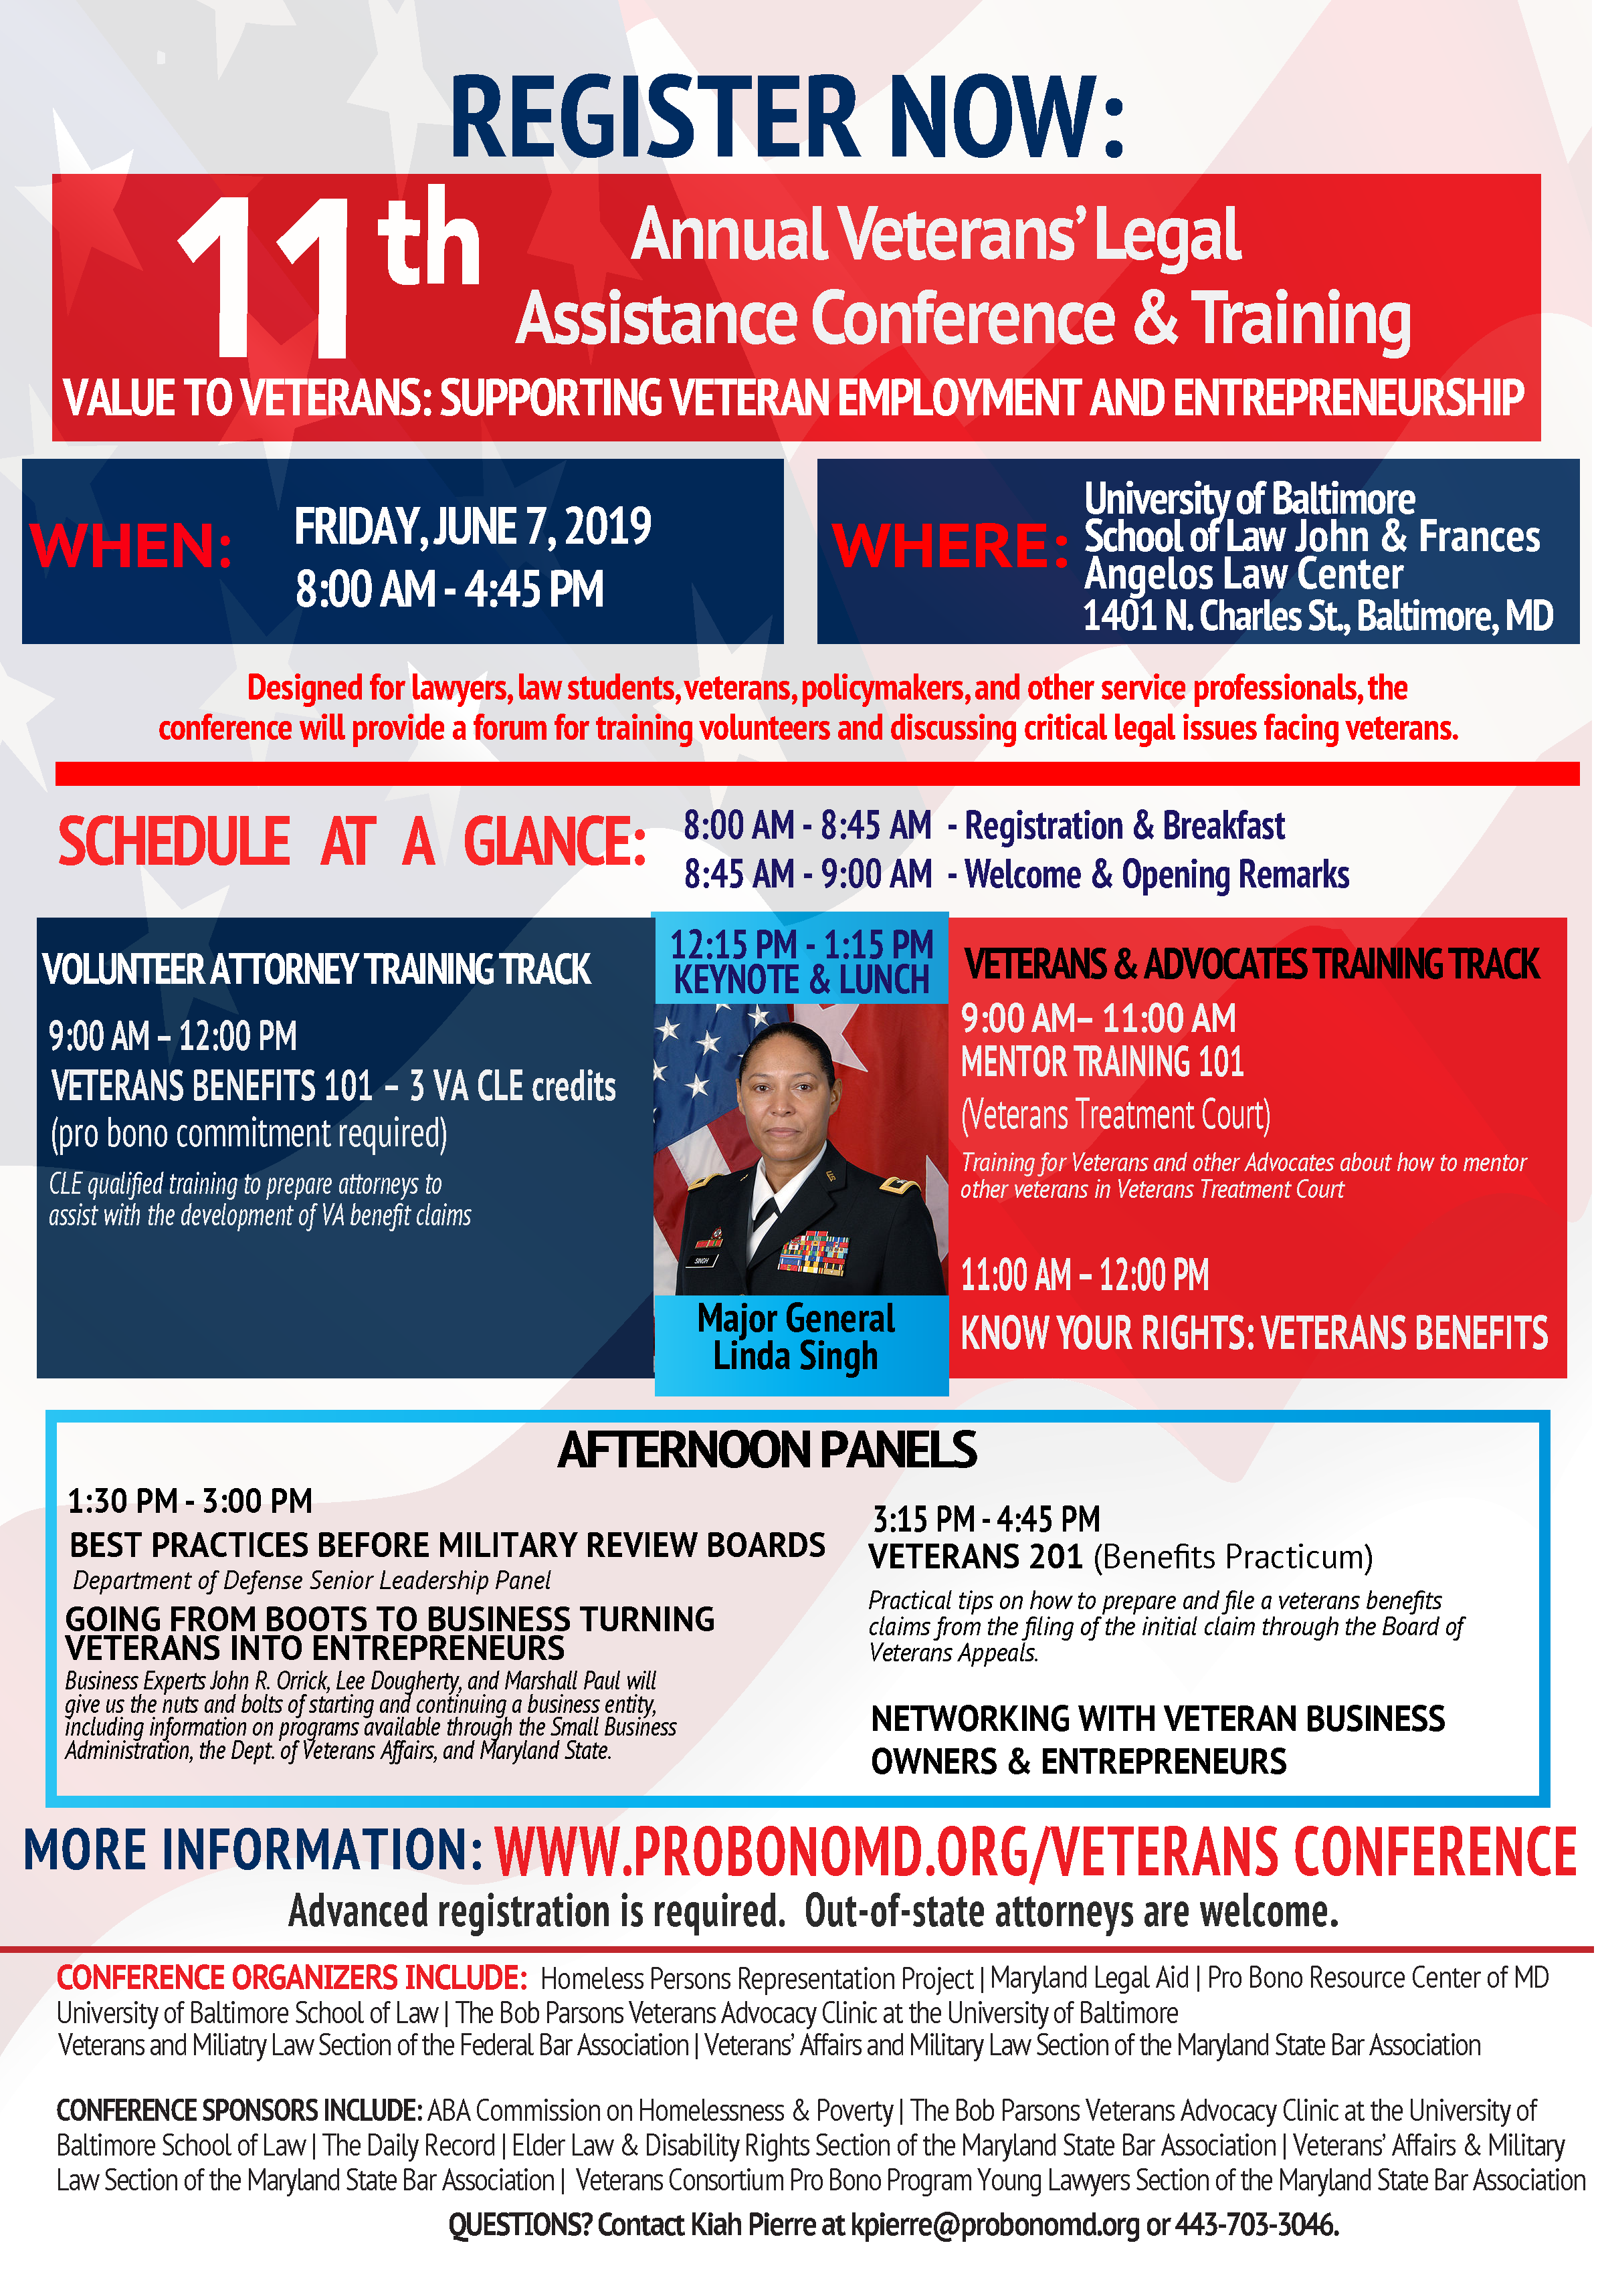 UB to Host Free Veterans' Legal Assistance Conference and